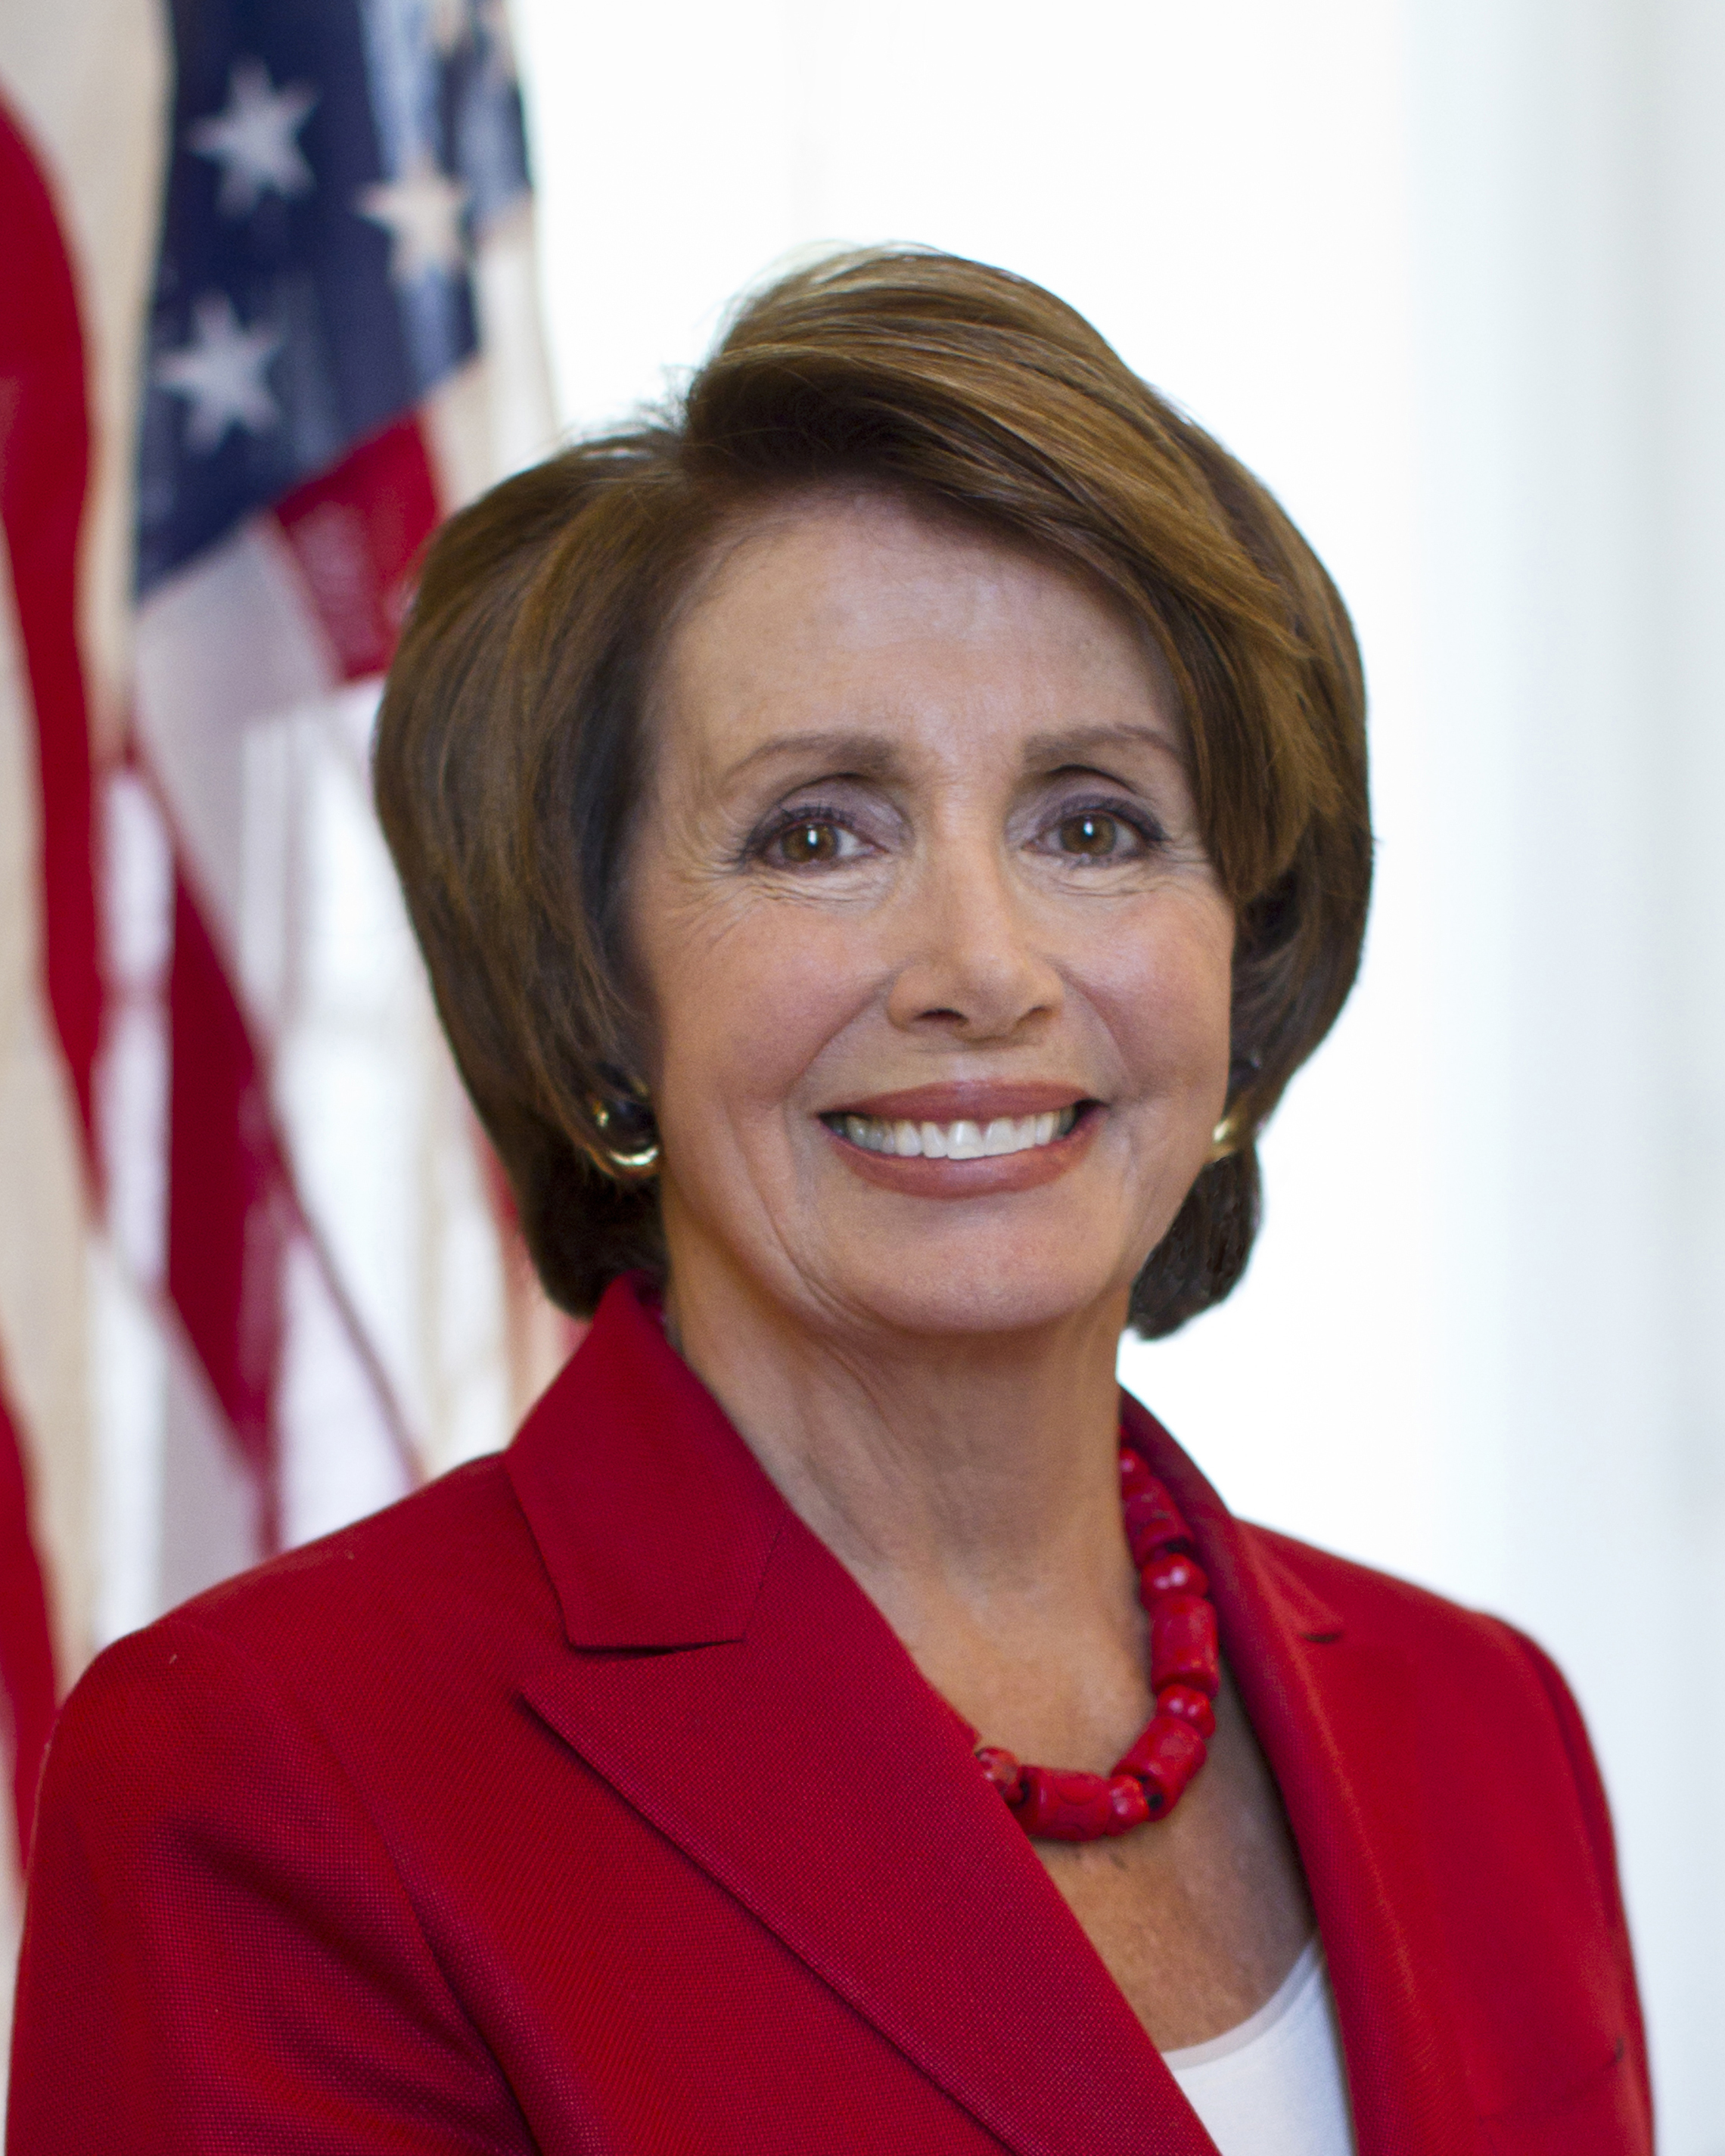 101 Nancy_Pelosi_2012.jpg